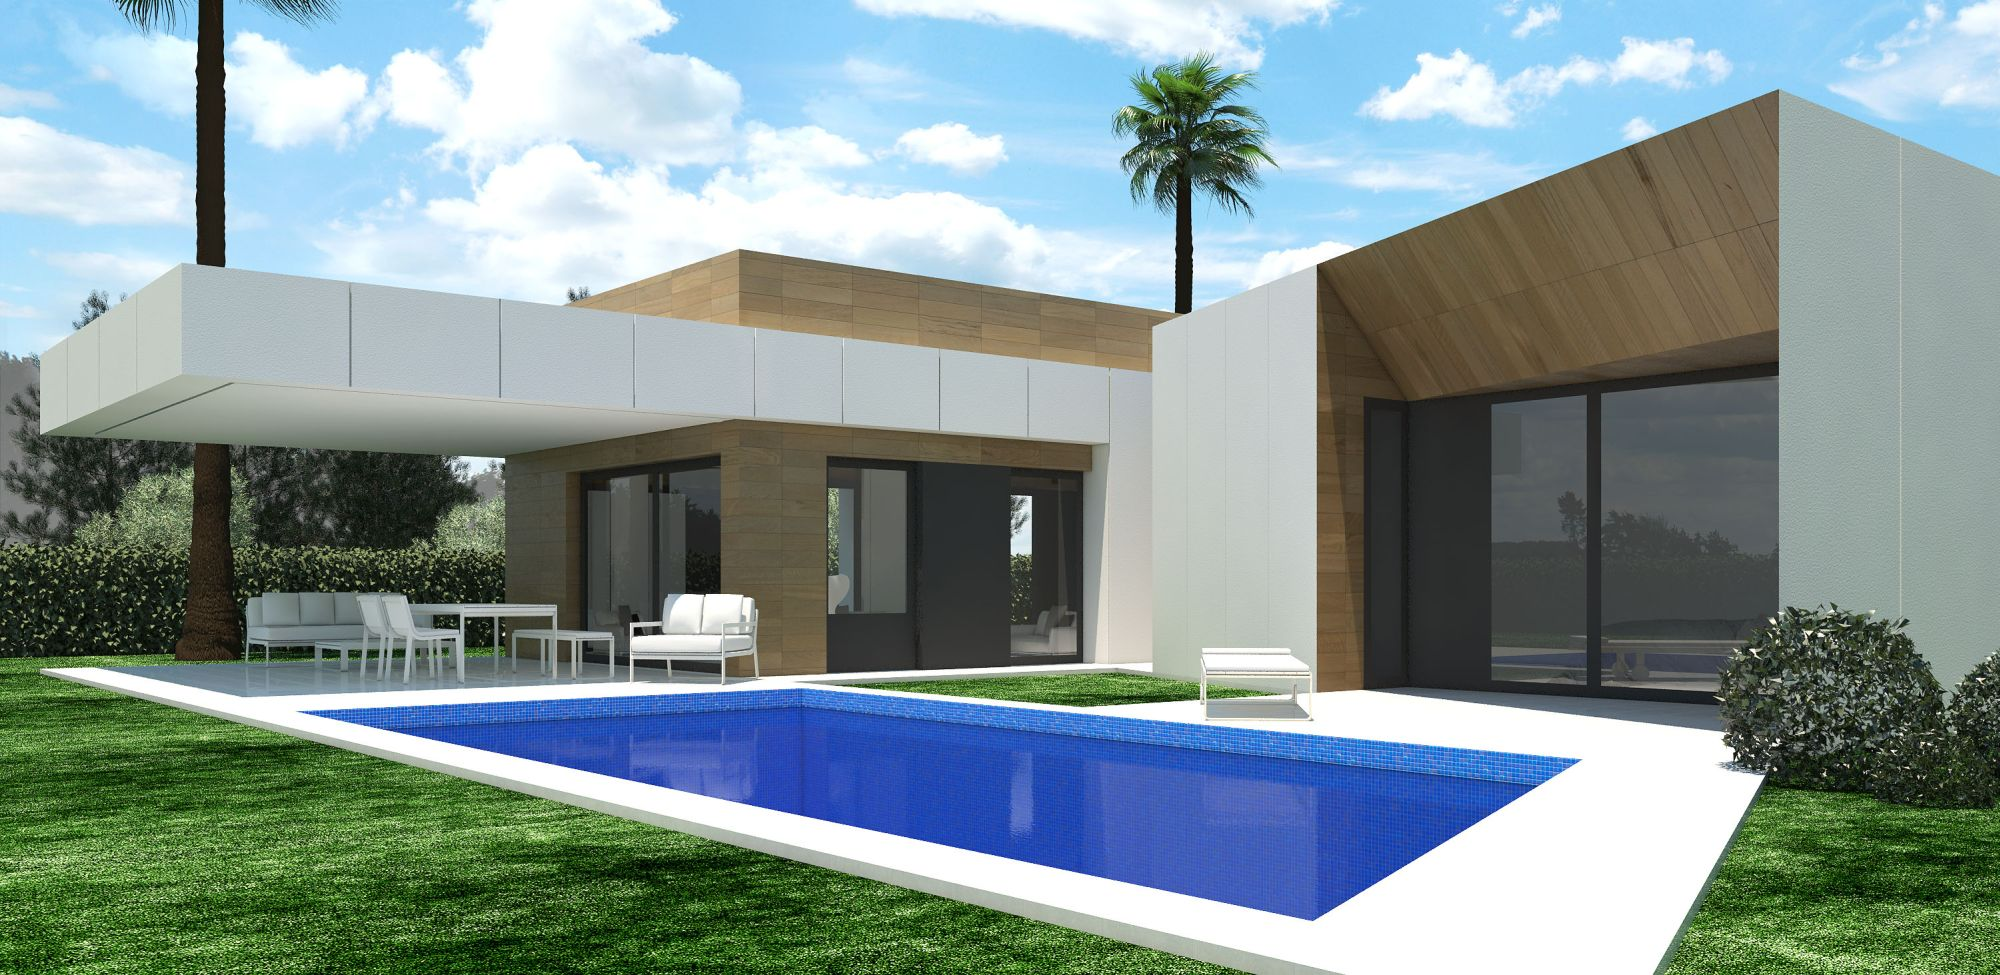 home design models. PreviousNext FORM A HOME MODELS  Royal Residence Lifestyle